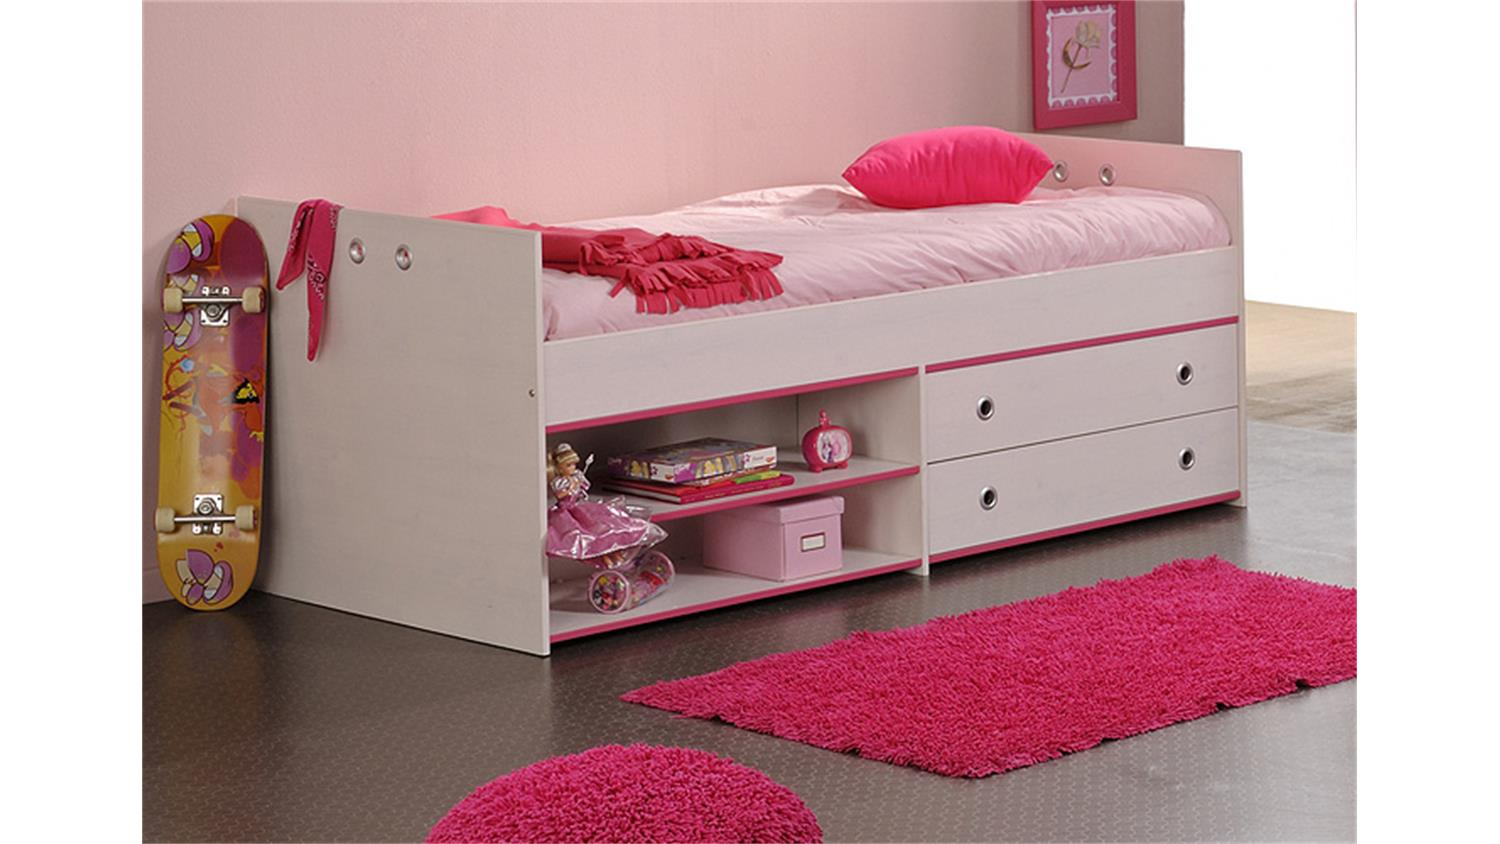 kinderbett smoozy 5 bett 90x200 in kiefer wei drehbare kanten blau oder pink. Black Bedroom Furniture Sets. Home Design Ideas